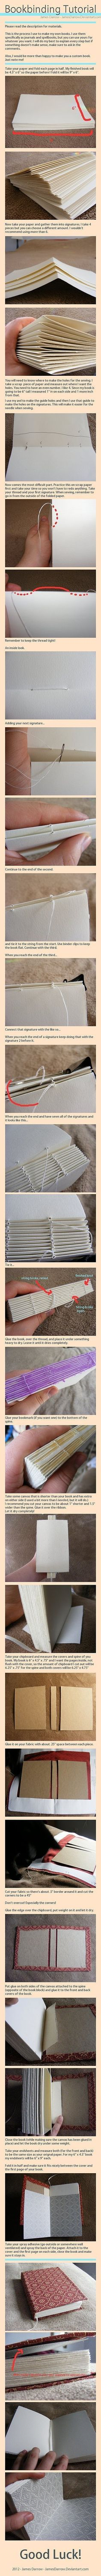 Make your own book. DIY book binding. ~ Will try this coming summer, good for new photos and stories to come.